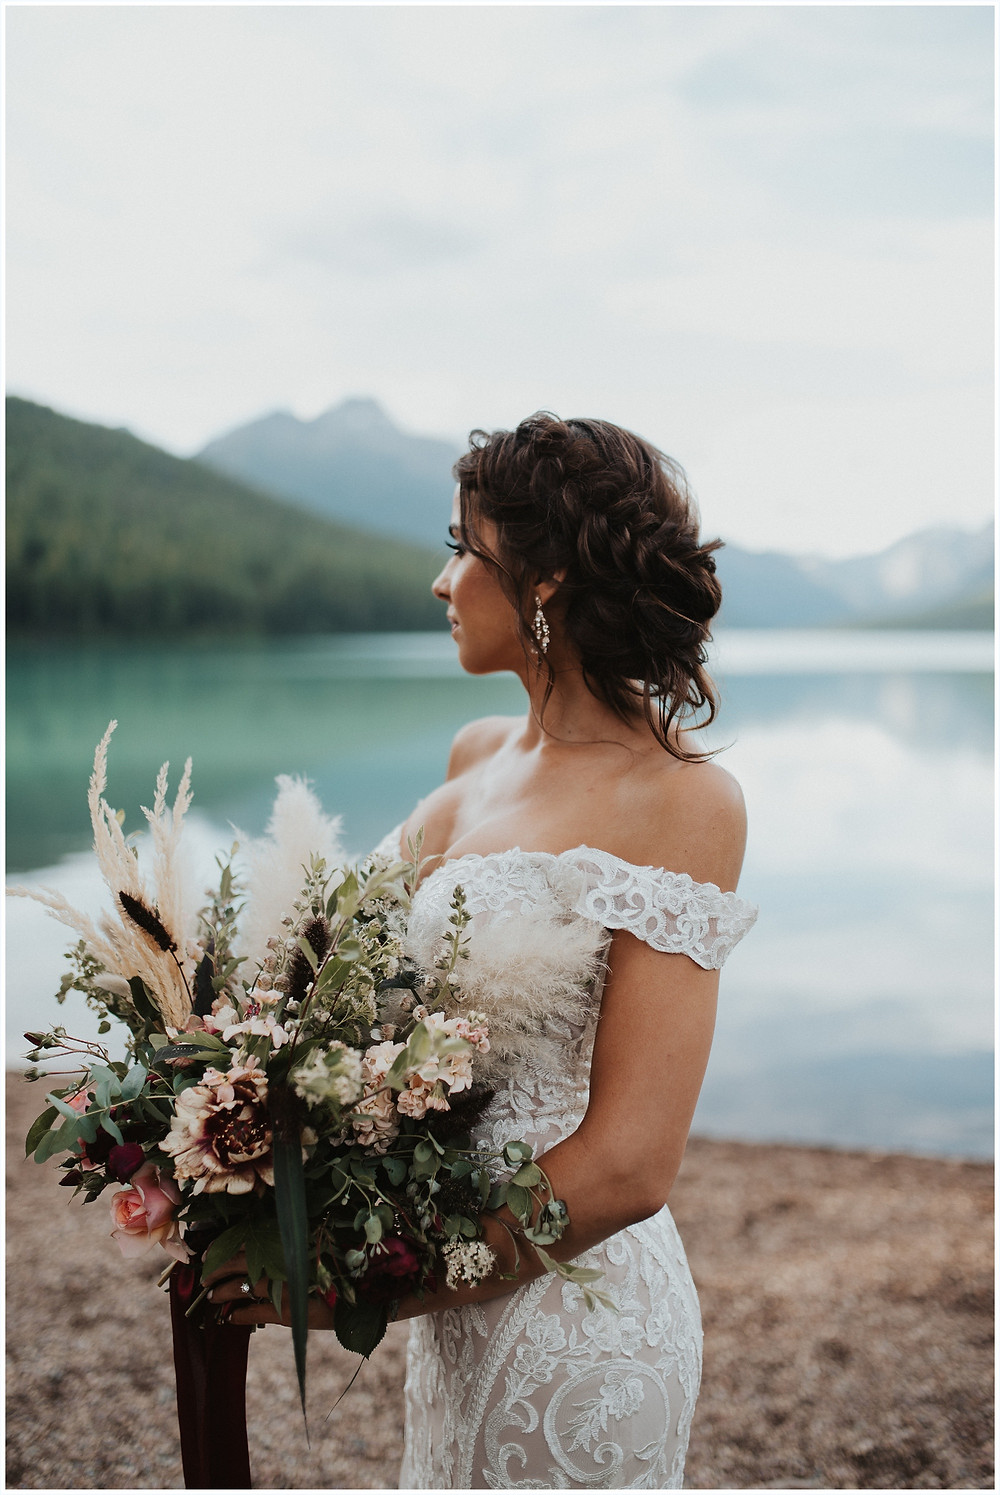 bouquet inspiration, bridal bouquet, Glacier National Park, Elegant and Romantic Styled Elopement, Katy Shay Photo, Montana Wedding and Elopement Photographer, Glacier National Park Photographer, Moody photos, glamorous wedding, Navy, maroon, coral, lace wedding dress, Bozeman photographer, Missoula photographer, Kalispell photographer, Glacier NP, Bowman Lake, styled shoot, elopement, elopement inspiration, bridal portraits, bridal hair and makeup